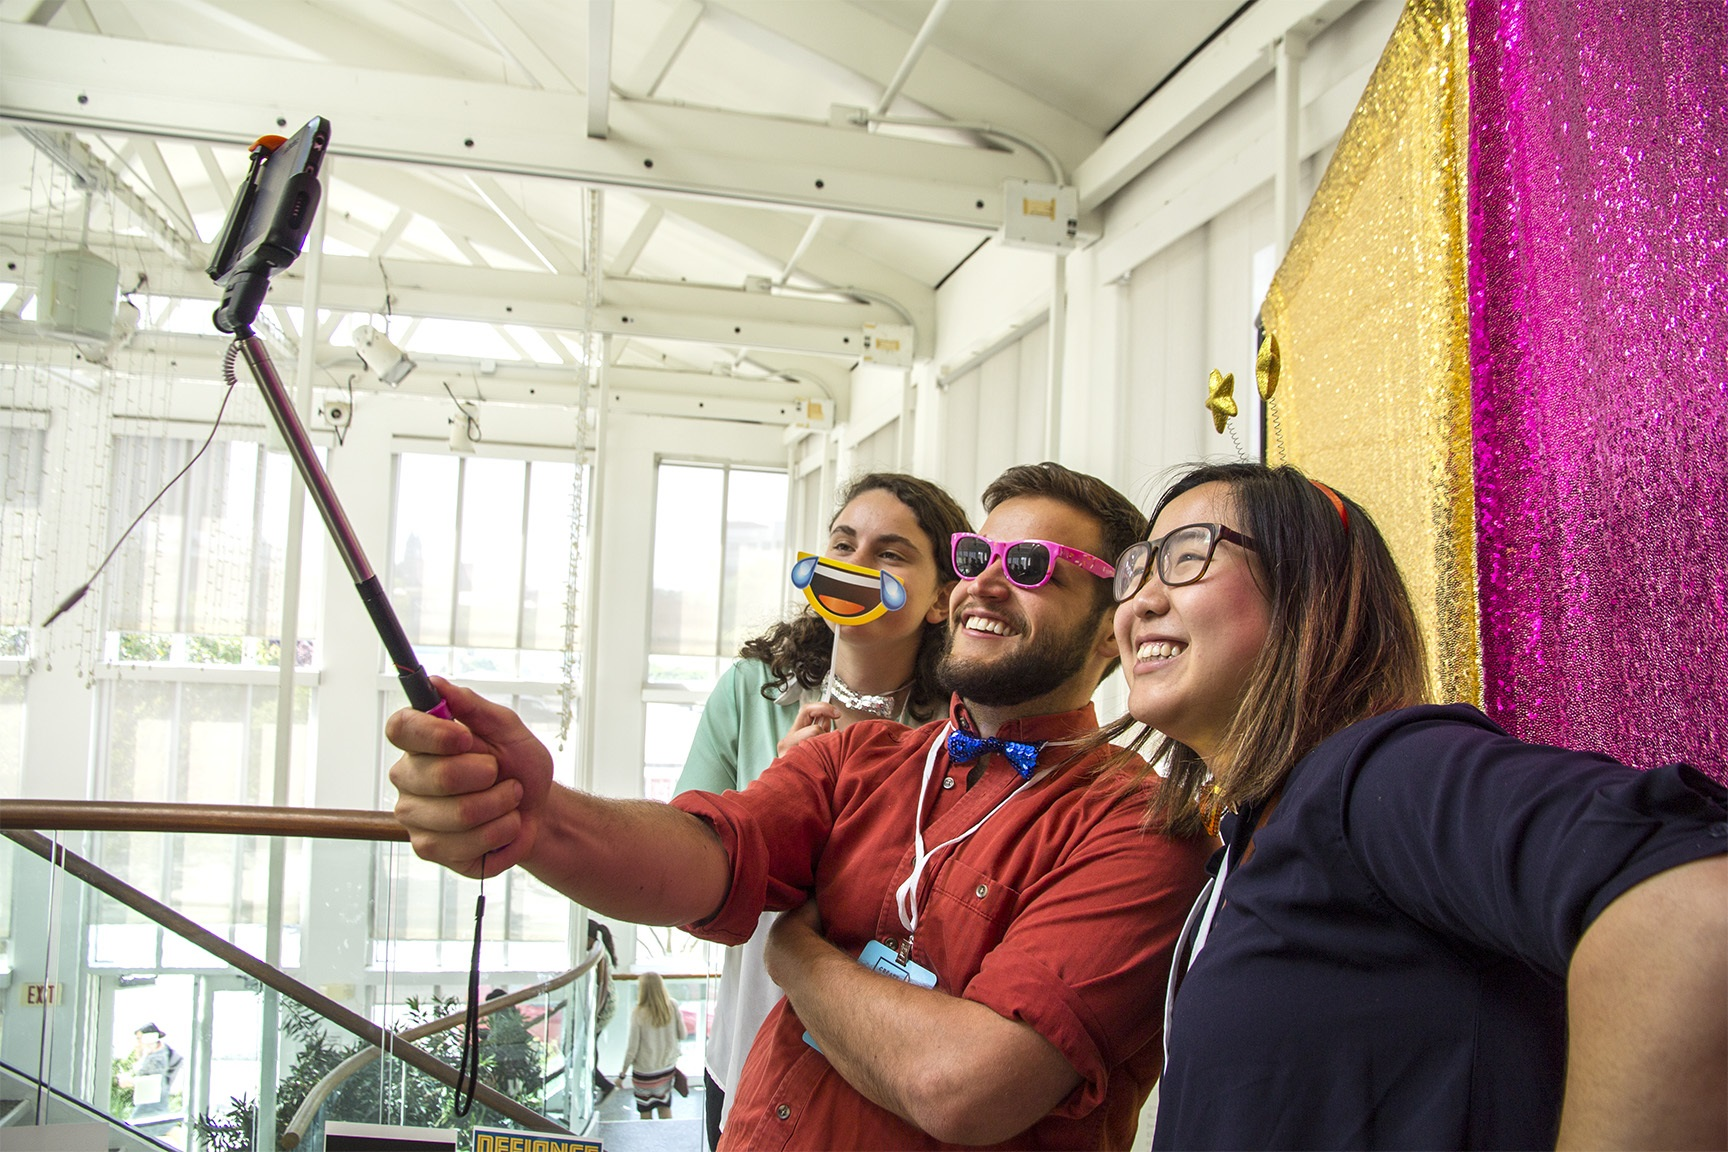 Picture of 3 people taking a selfie using fun props in front of a sparkly background